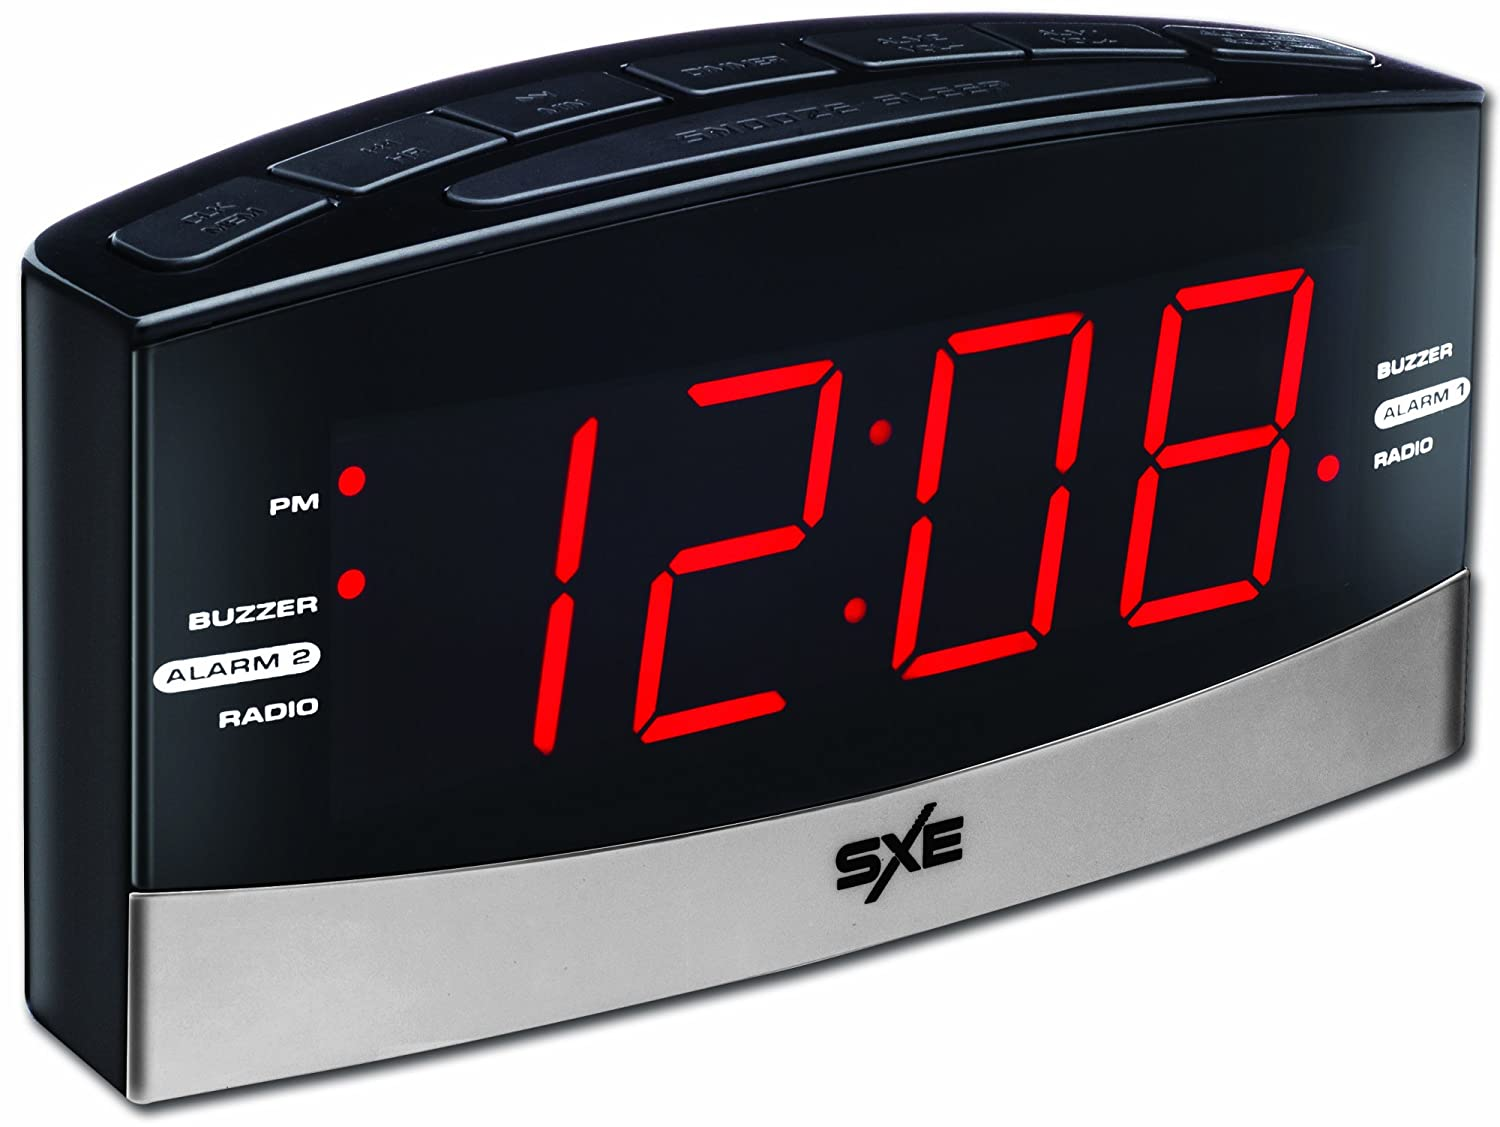 Amazon Sxe SXE86007 Large Display AM FM Clock Radio Home Kitchen